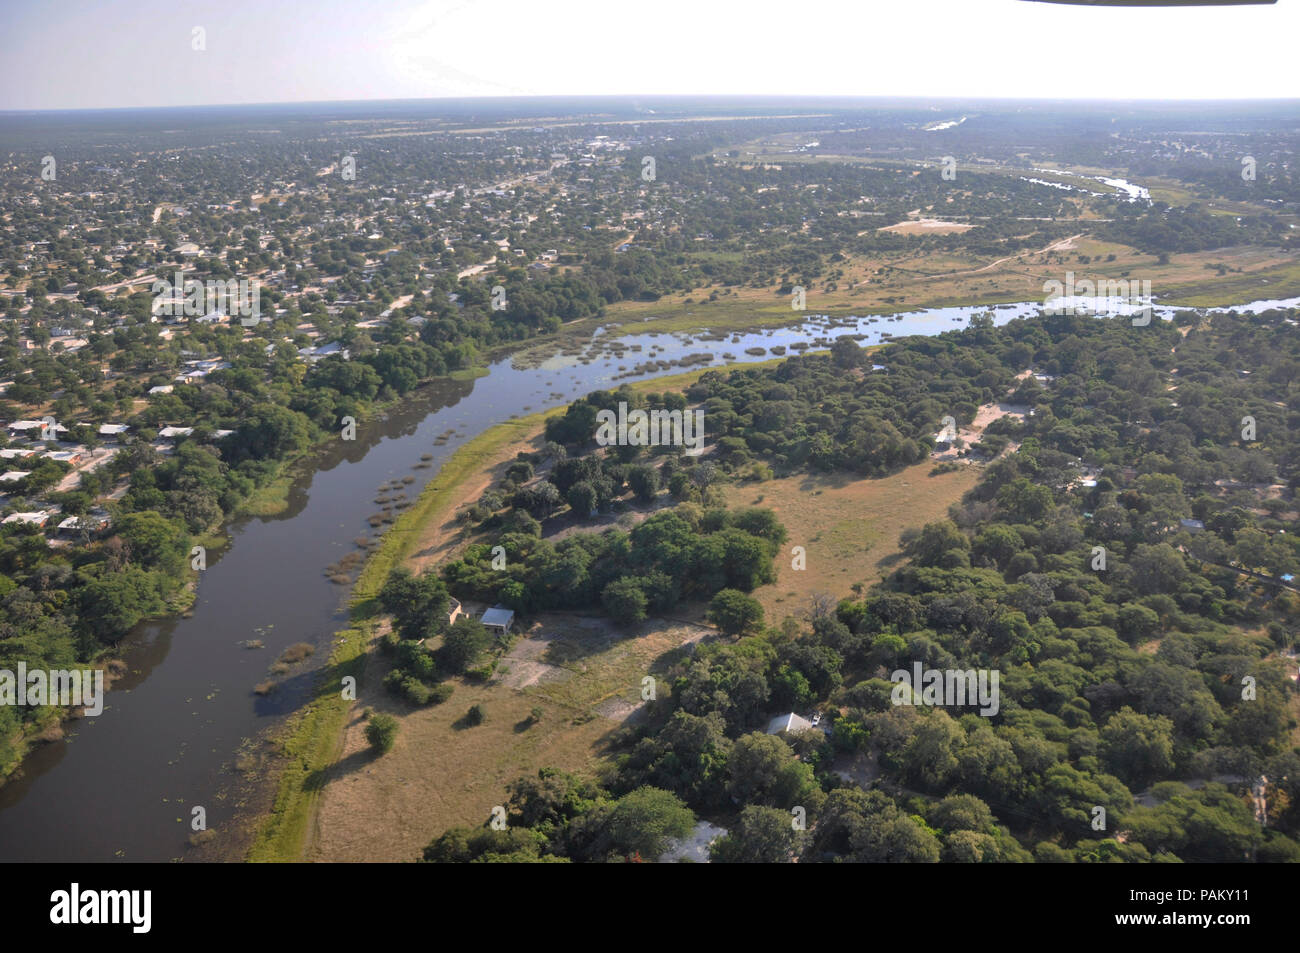 Airshot: Maun-City at the boarder of the Okavango-Delta river in the Central-Kalahri. - Stock Image